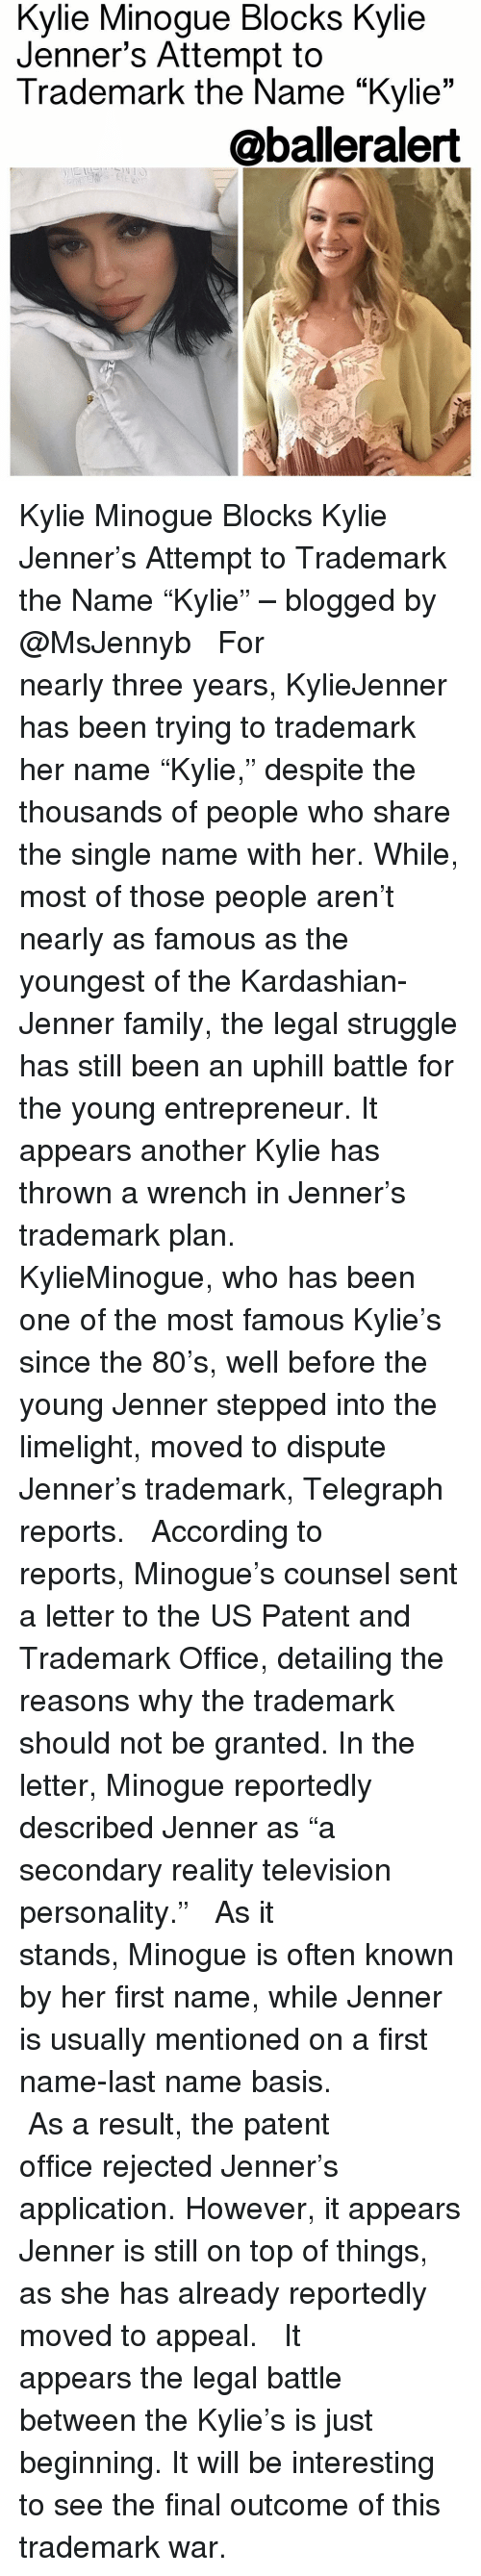 "Kylie Jenner, Memes, and Telegraph: Minogue Blocks Kylie  Minogue Attempt to  Trademark the Name ""Kylie  33  @balleralert Kylie Minogue Blocks Kylie Jenner's Attempt to Trademark the Name ""Kylie"" – blogged by @MsJennyb ⠀⠀⠀⠀⠀⠀⠀ ⠀⠀⠀⠀⠀⠀⠀ For nearly three years, KylieJenner has been trying to trademark her name ""Kylie,"" despite the thousands of people who share the single name with her. While, most of those people aren't nearly as famous as the youngest of the Kardashian-Jenner family, the legal struggle has still been an uphill battle for the young entrepreneur. It appears another Kylie has thrown a wrench in Jenner's trademark plan. ⠀⠀⠀⠀⠀⠀⠀ ⠀⠀⠀⠀⠀⠀⠀ KylieMinogue, who has been one of the most famous Kylie's since the 80's, well before the young Jenner stepped into the limelight, moved to dispute Jenner's trademark, Telegraph reports. ⠀⠀⠀⠀⠀⠀⠀ ⠀⠀⠀⠀⠀⠀⠀ According to reports, Minogue's counsel sent a letter to the US Patent and Trademark Office, detailing the reasons why the trademark should not be granted. In the letter, Minogue reportedly described Jenner as ""a secondary reality television personality."" ⠀⠀⠀⠀⠀⠀⠀ ⠀⠀⠀⠀⠀⠀⠀ As it stands, Minogue is often known by her first name, while Jenner is usually mentioned on a first name-last name basis. ⠀⠀⠀⠀⠀⠀⠀ ⠀⠀⠀⠀⠀⠀⠀ As a result, the patent office rejected Jenner's application. However, it appears Jenner is still on top of things, as she has already reportedly moved to appeal. ⠀⠀⠀⠀⠀⠀⠀ ⠀⠀⠀⠀⠀⠀⠀ It appears the legal battle between the Kylie's is just beginning. It will be interesting to see the final outcome of this trademark war."